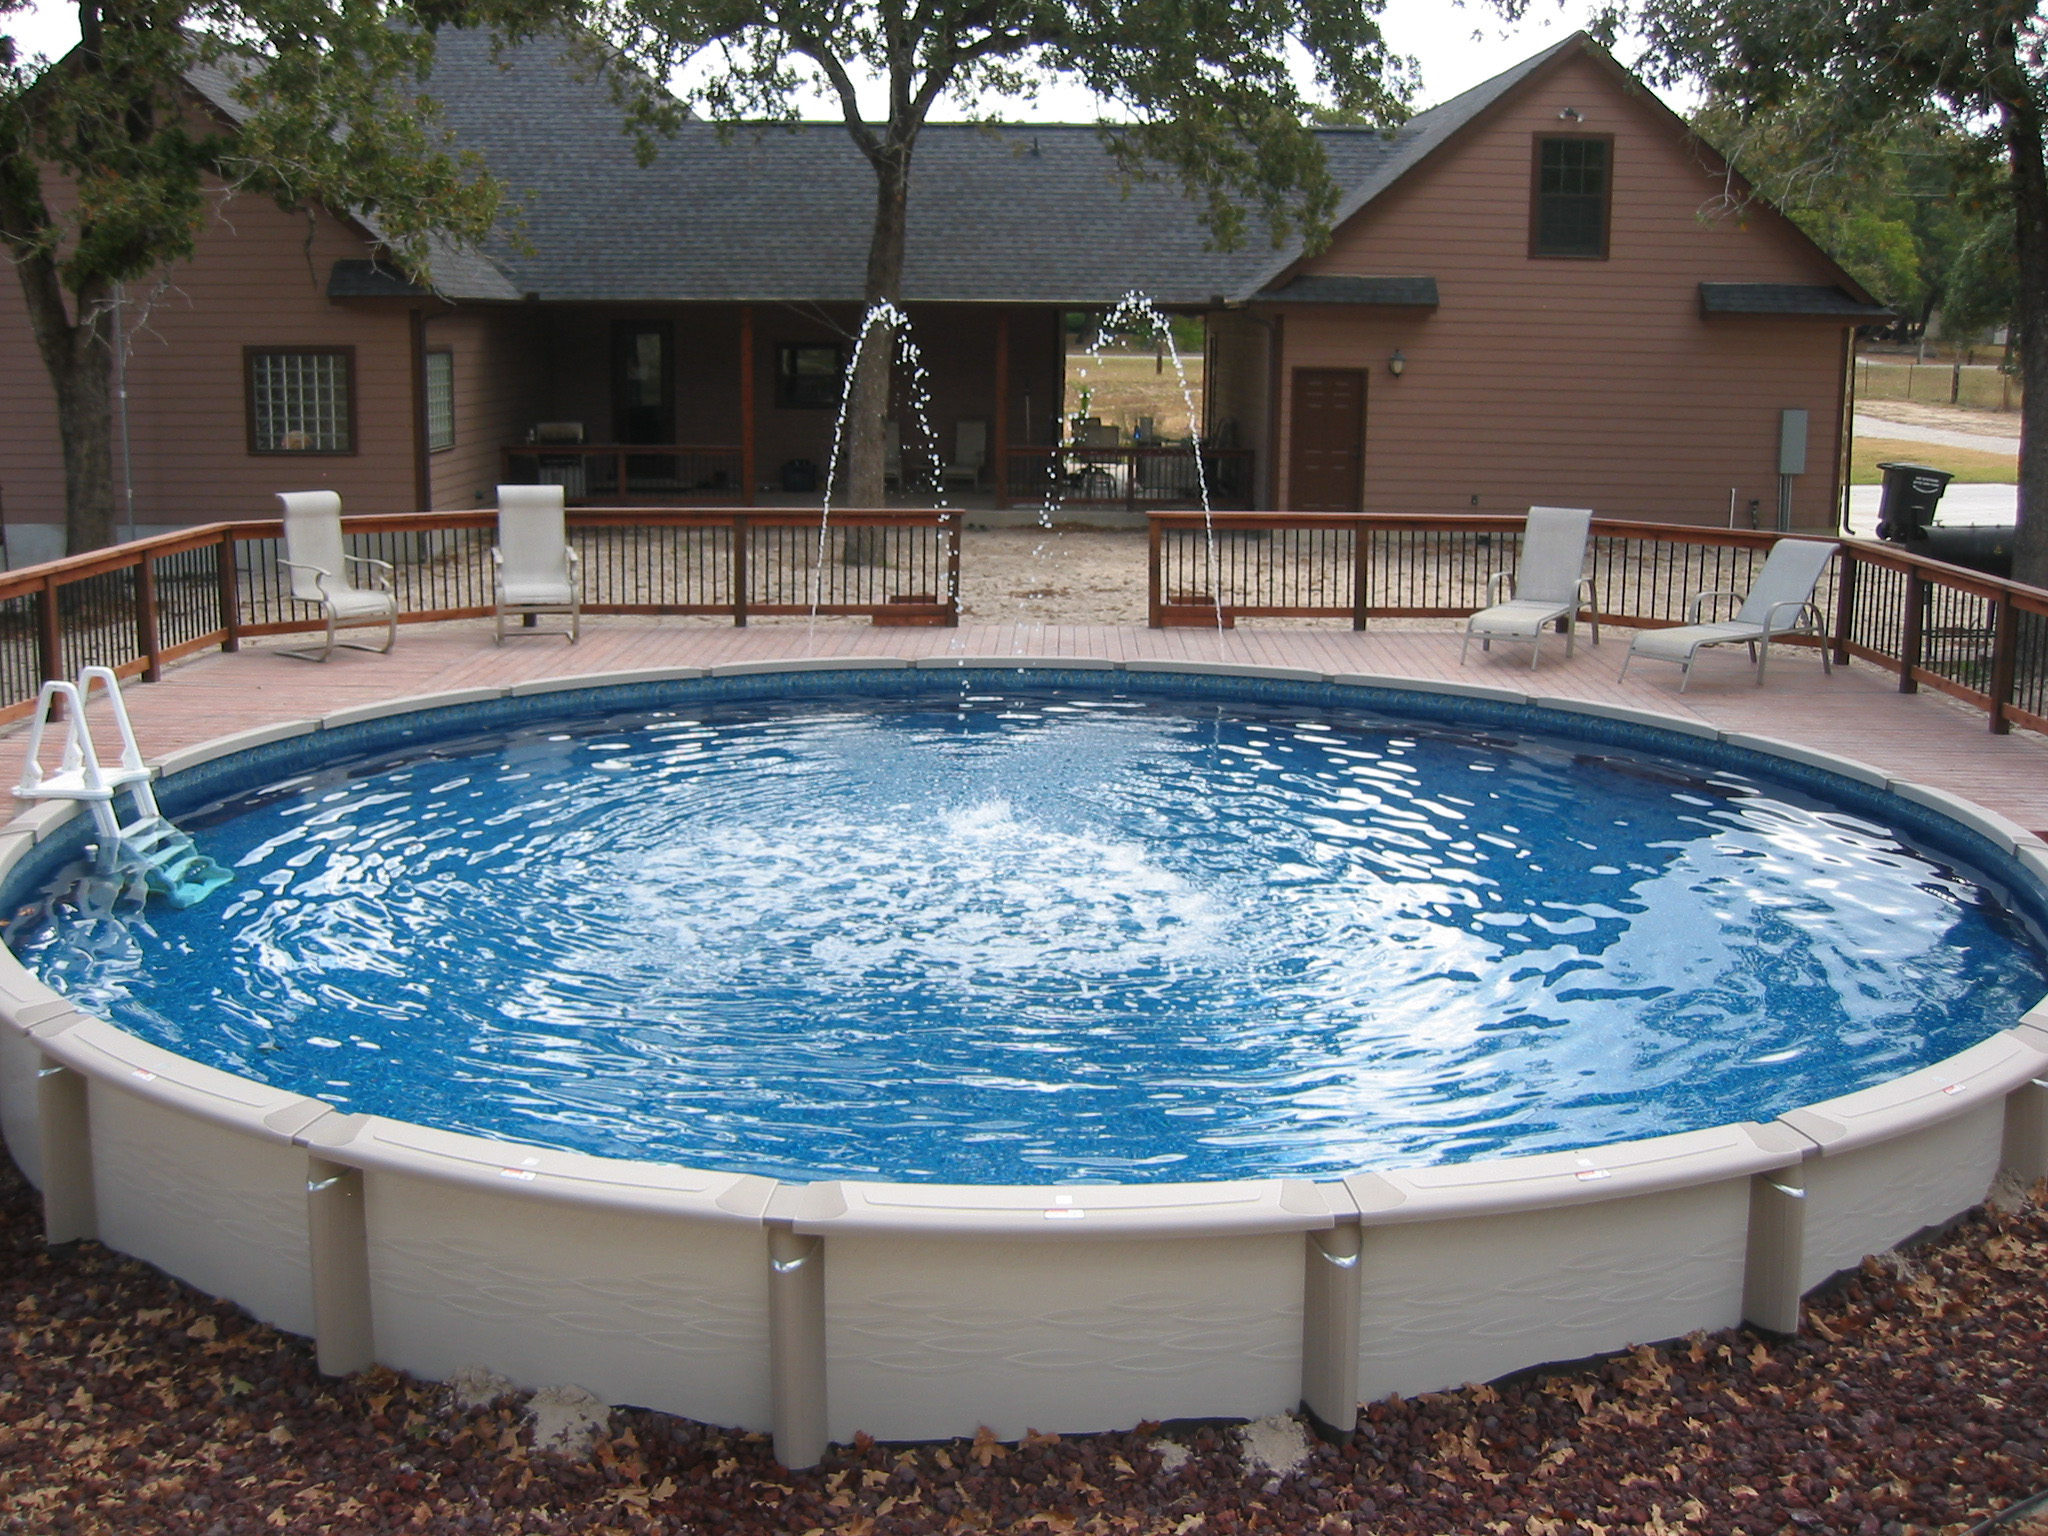 Best above ground swimming pools design on vine for Best pool design 2015